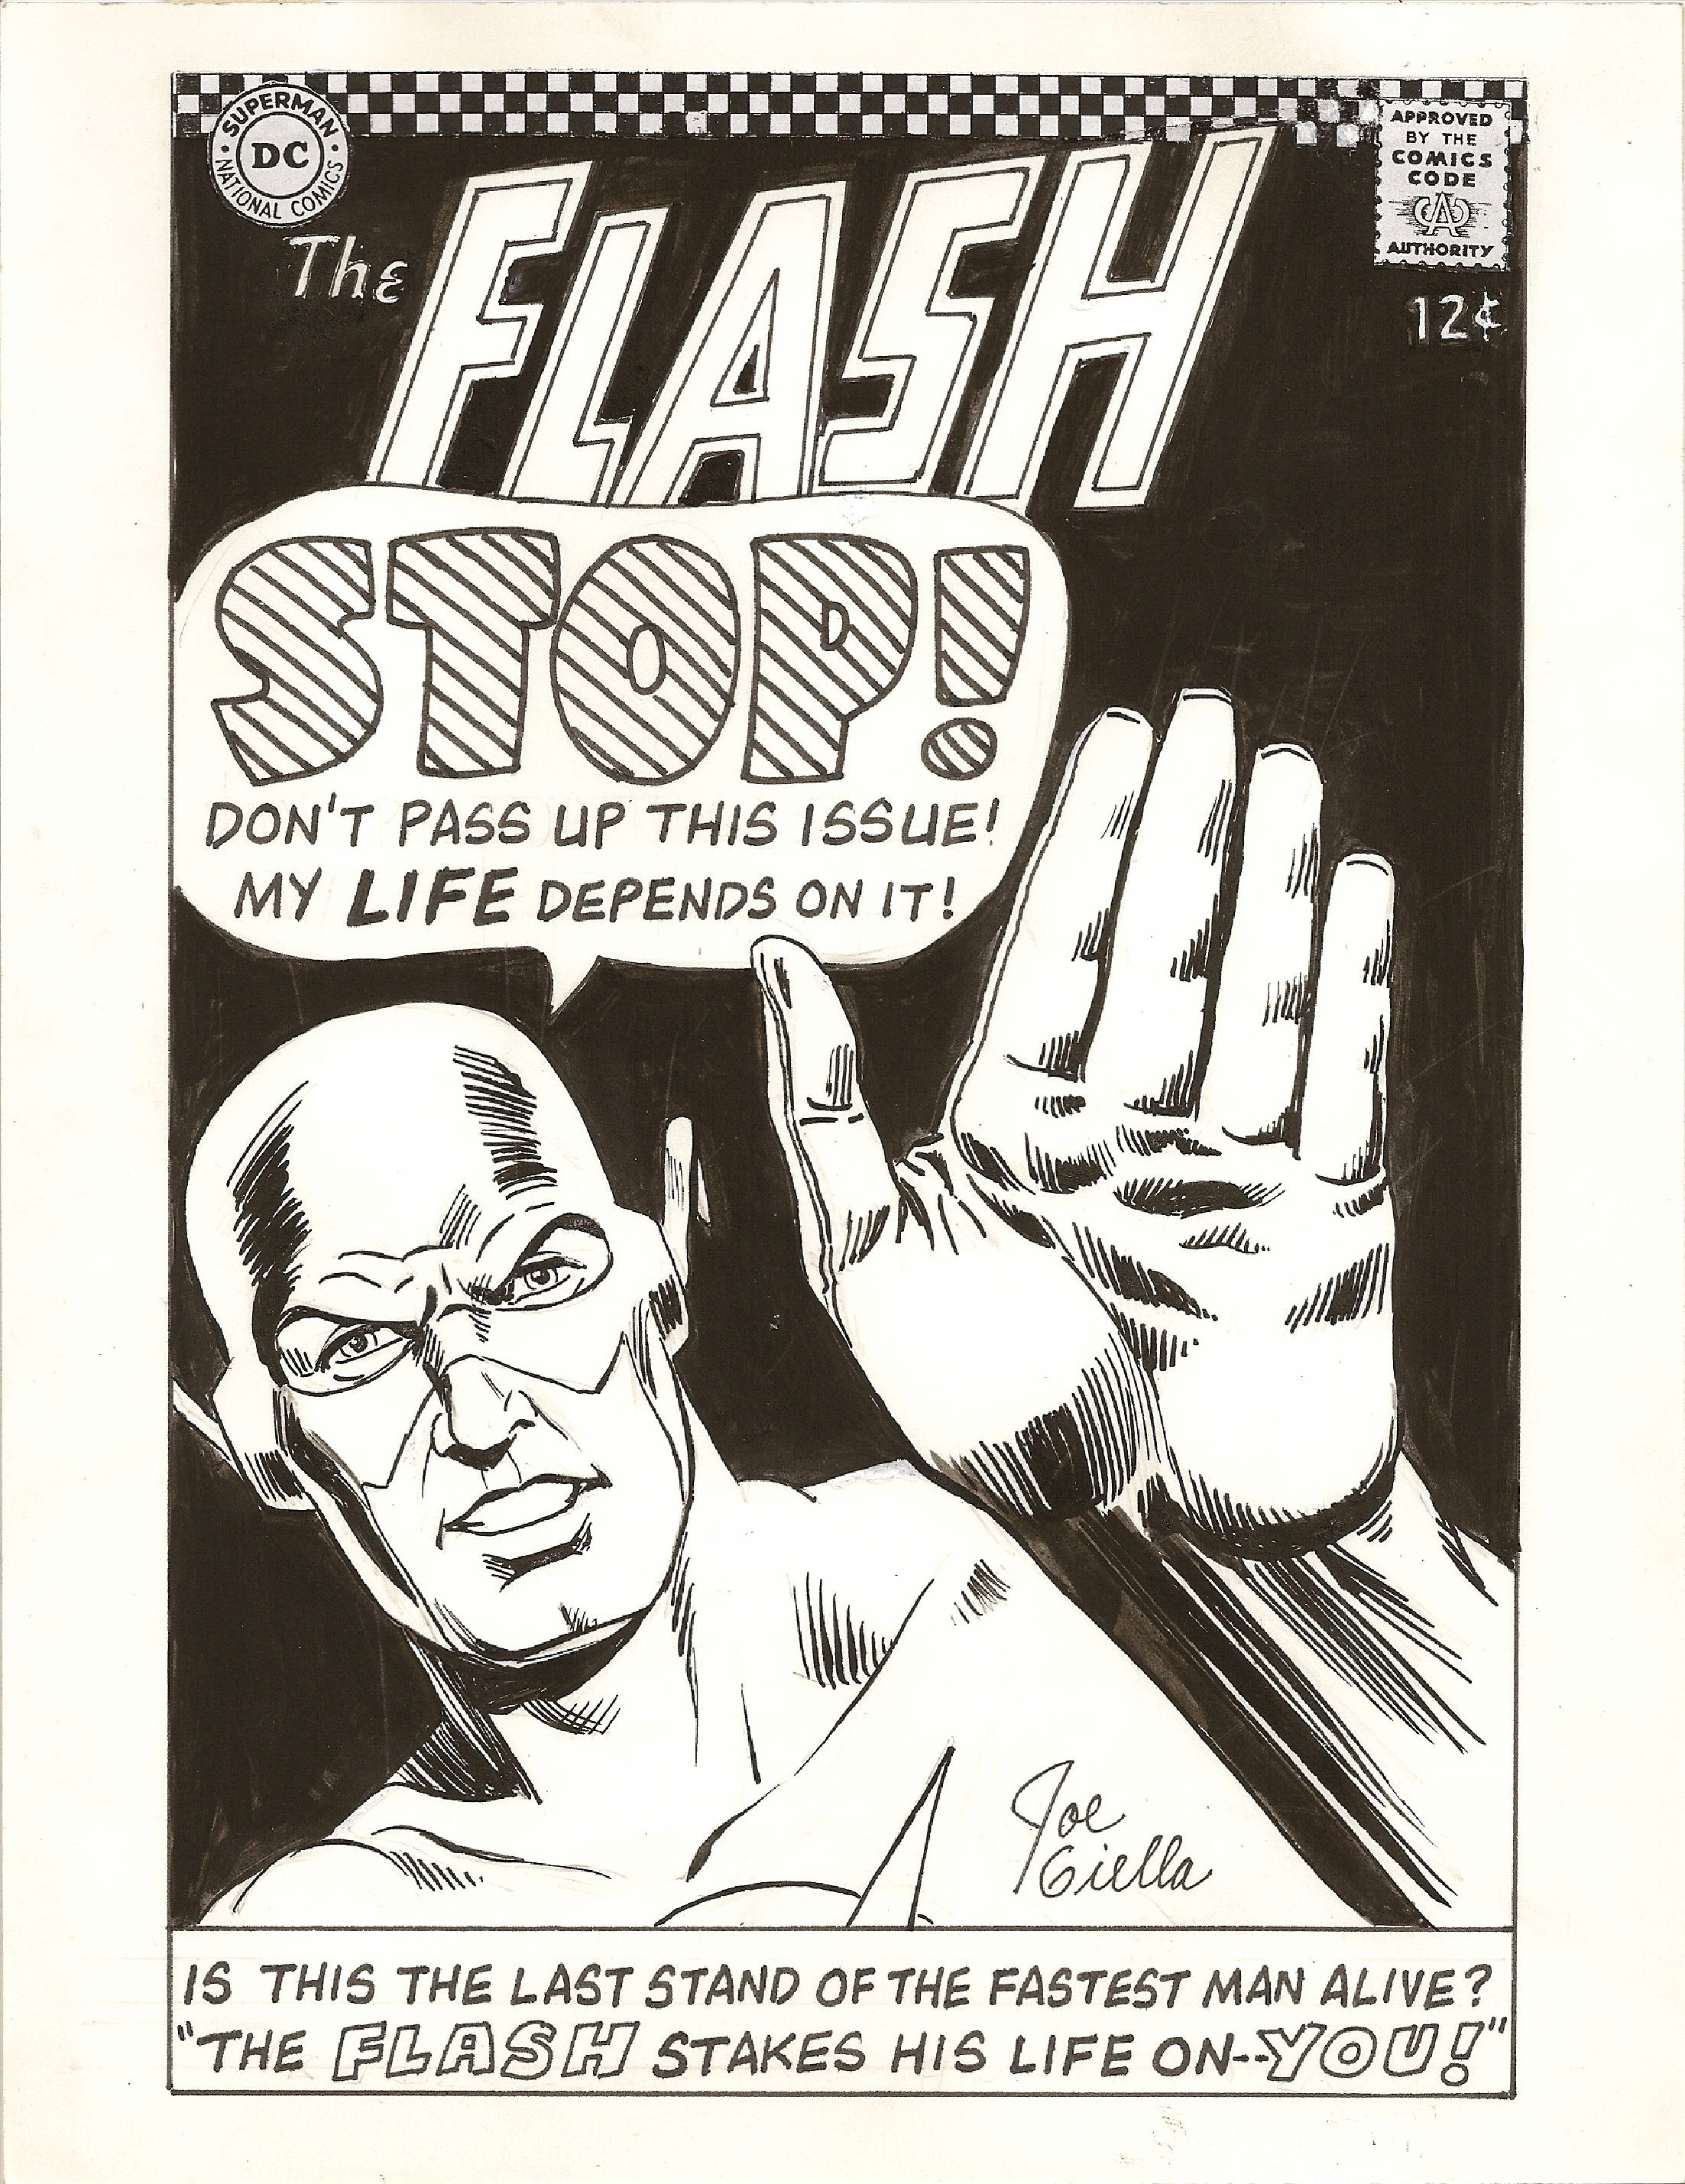 The Flash (1959) #163 cover re-creation commission done by Joe Giella.